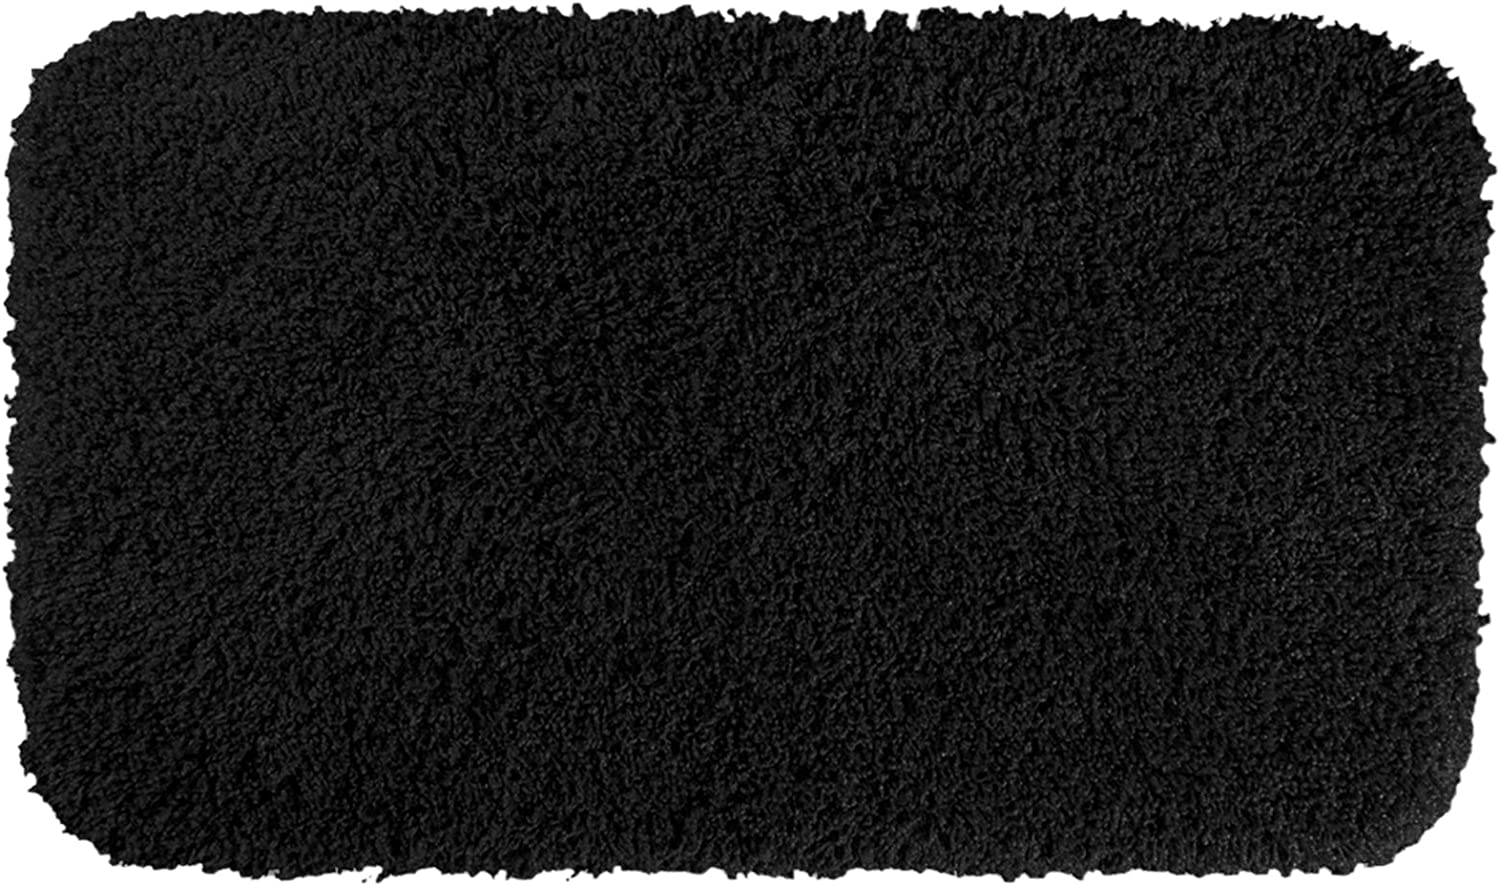 Garland Rug Manufacturer Manufacturer direct delivery regenerated product Serendipity Shaggy Washable Nylon by 30-Inch 50